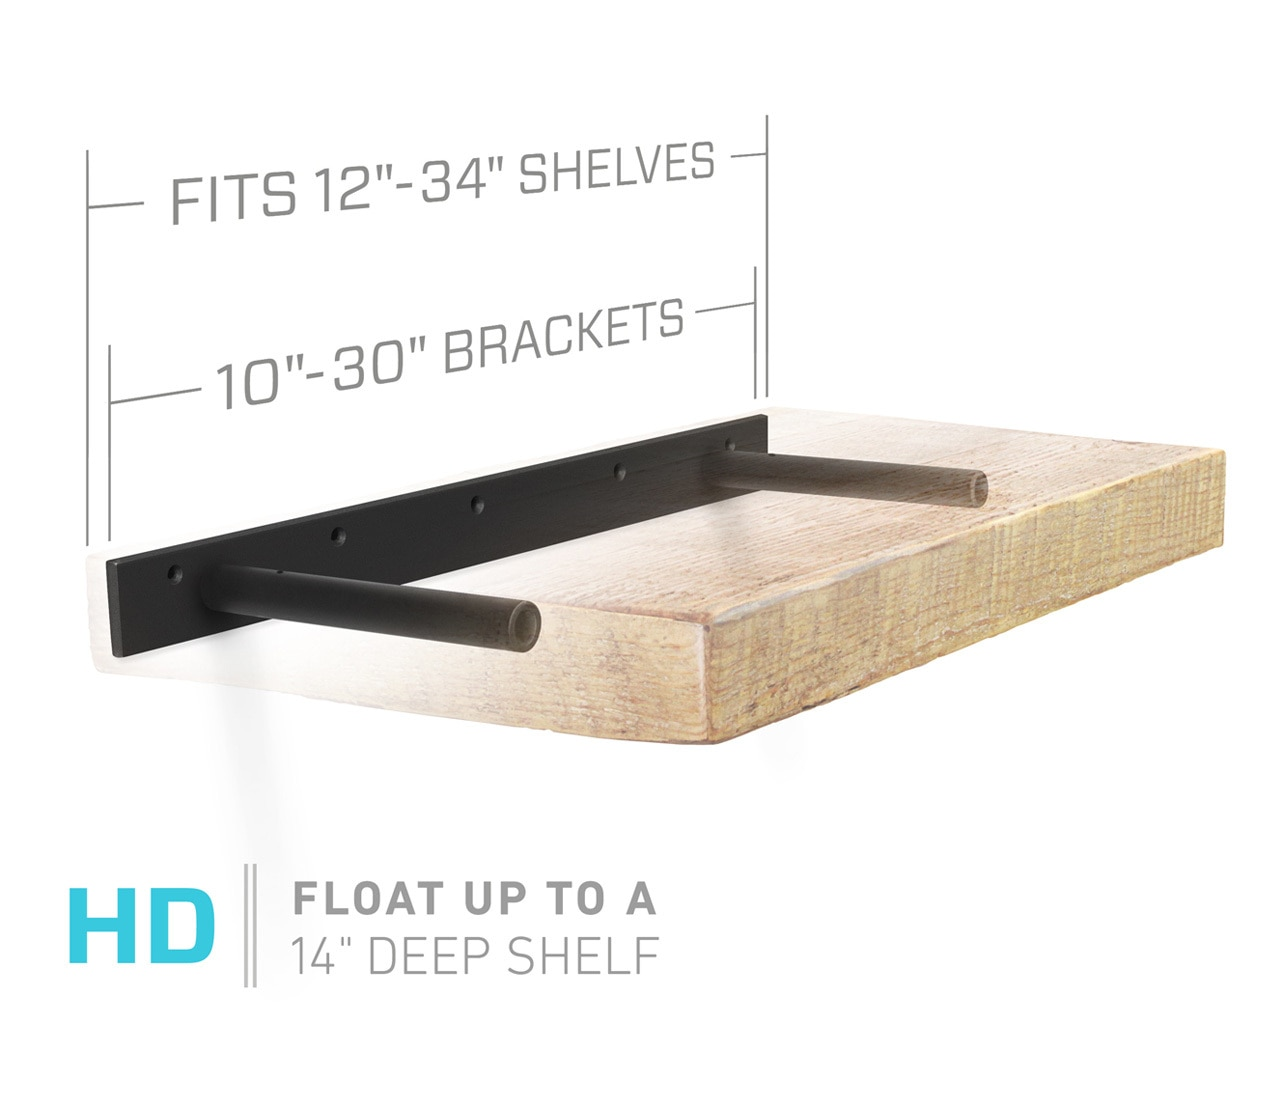 floating shelves brackets philmanley inside heavy duty shelf bracket fits inch remodel perth modern bath vanity open ideas dvd player wall rack book kmart shelving unit ikea